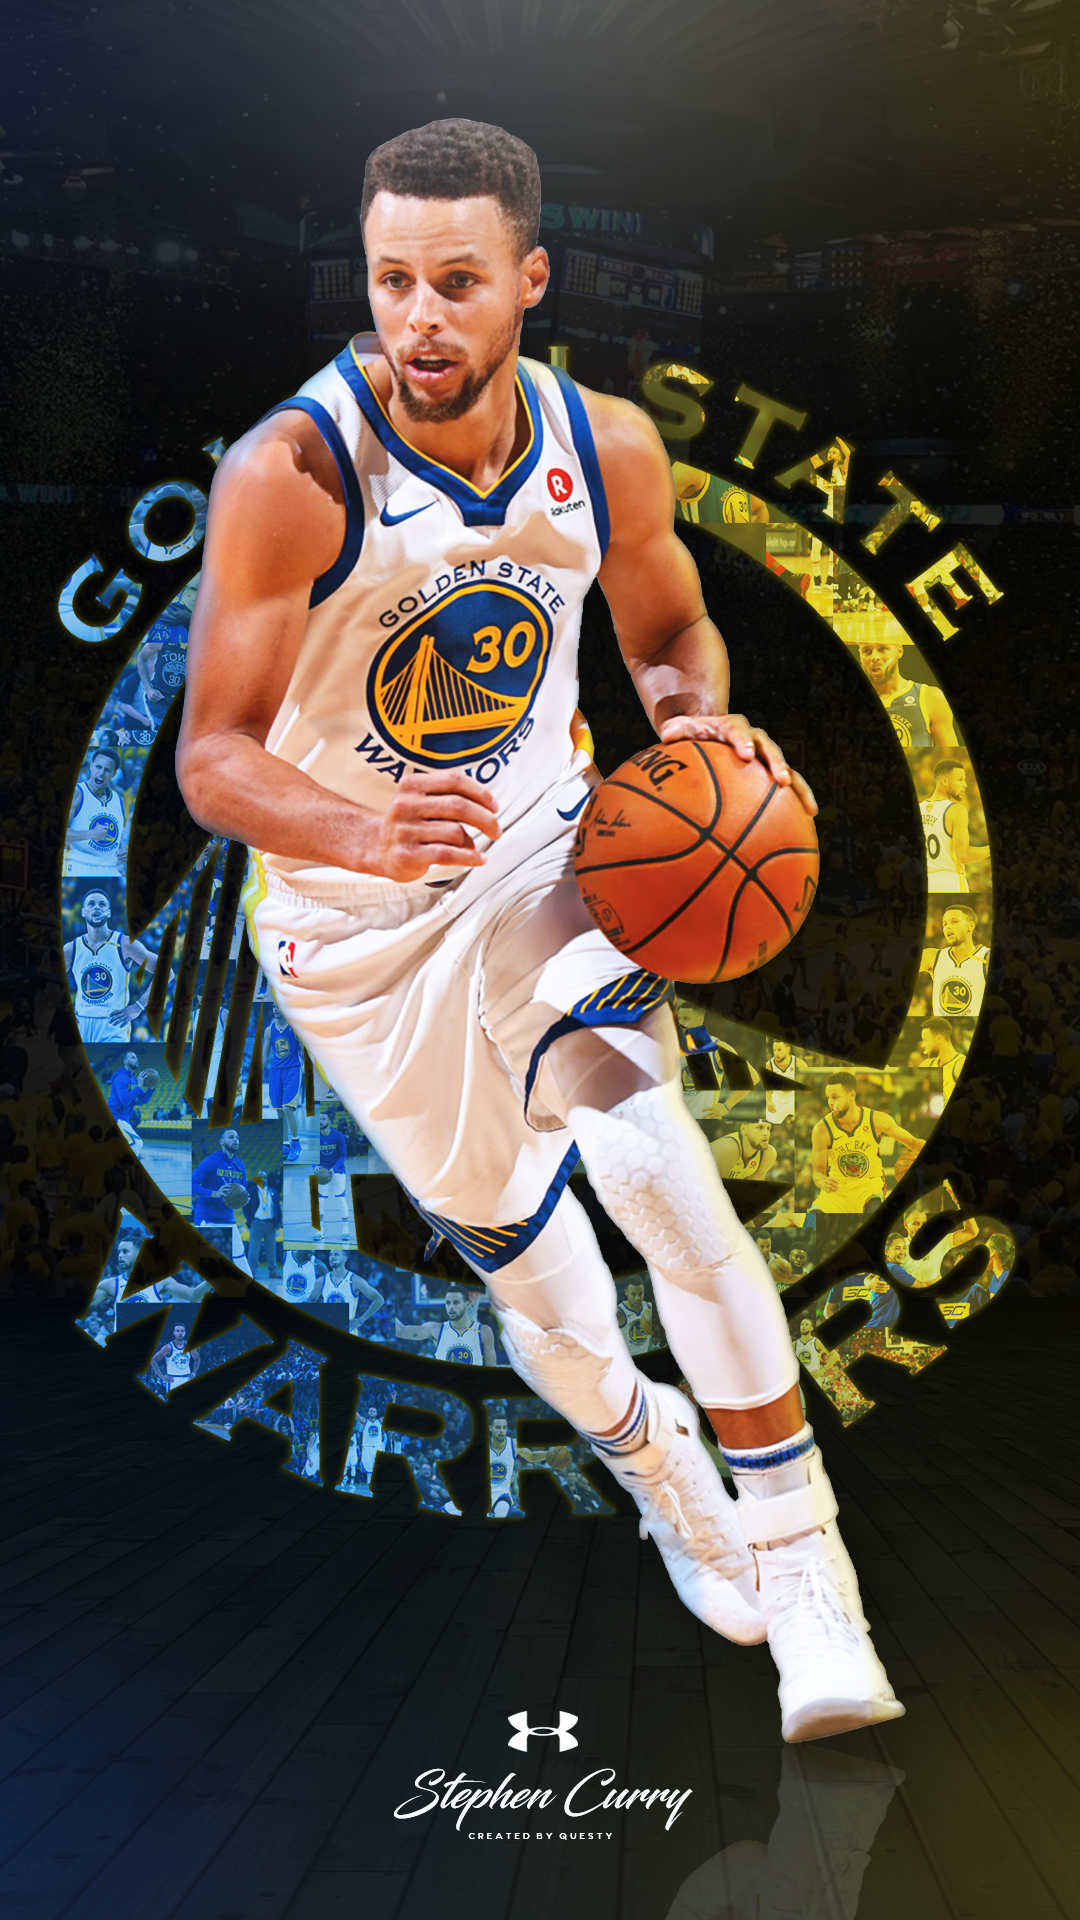 Phone Wallpapers on Behance. Phone Wallpapers on Behance Stephen Curry ...